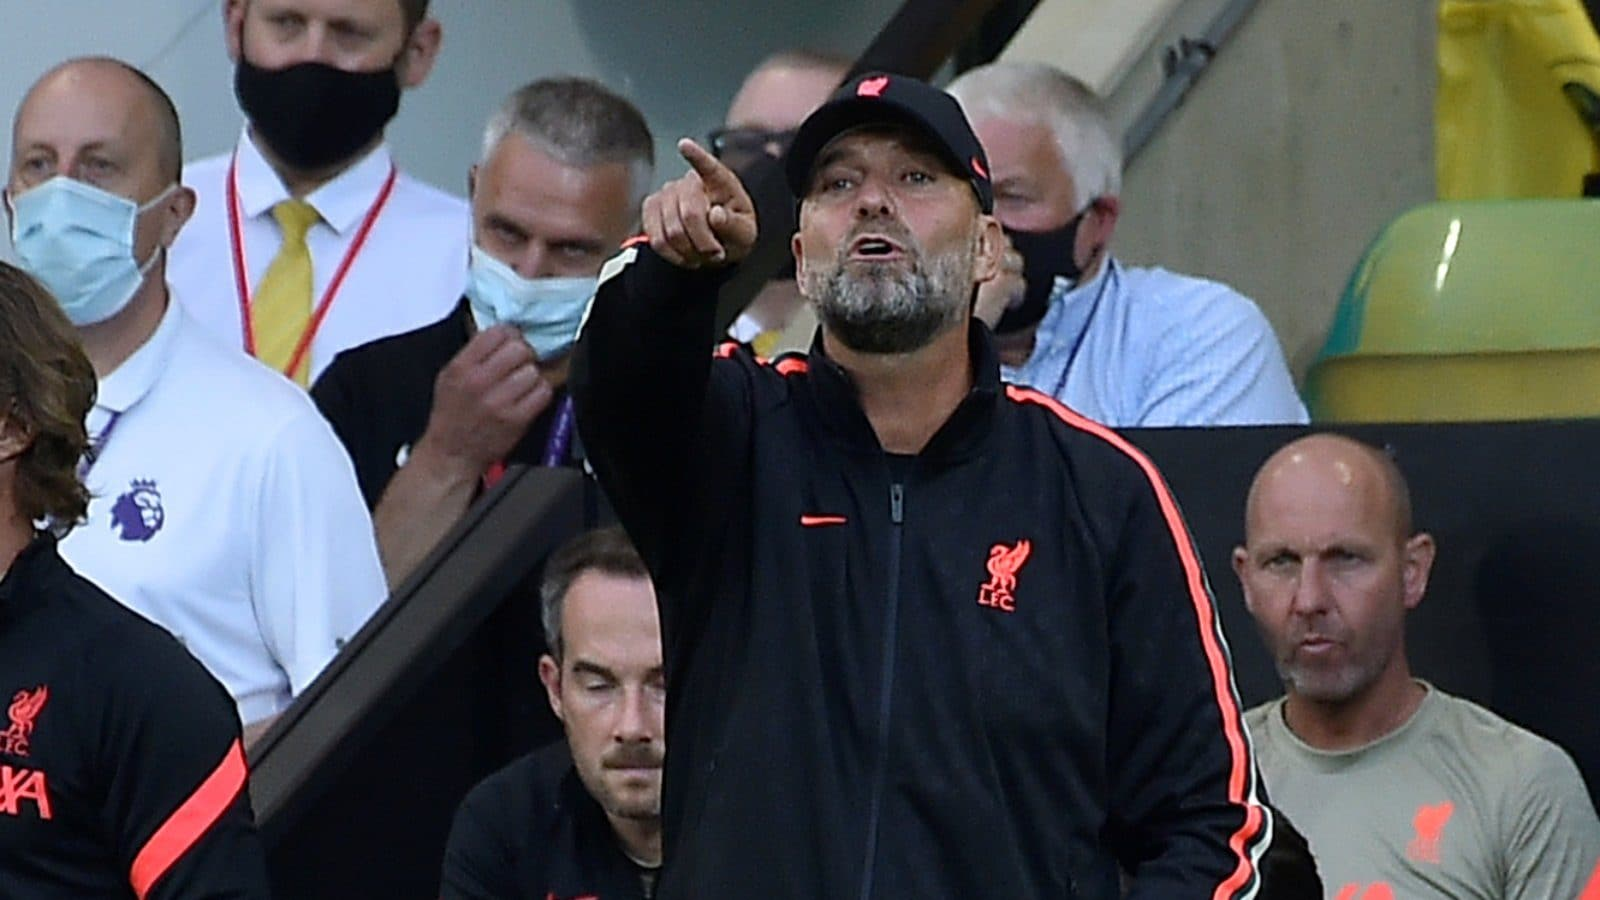 Liverpool Manager Juergen Klopp Wants 'Solution' as World Cup Quarantine Row Returns